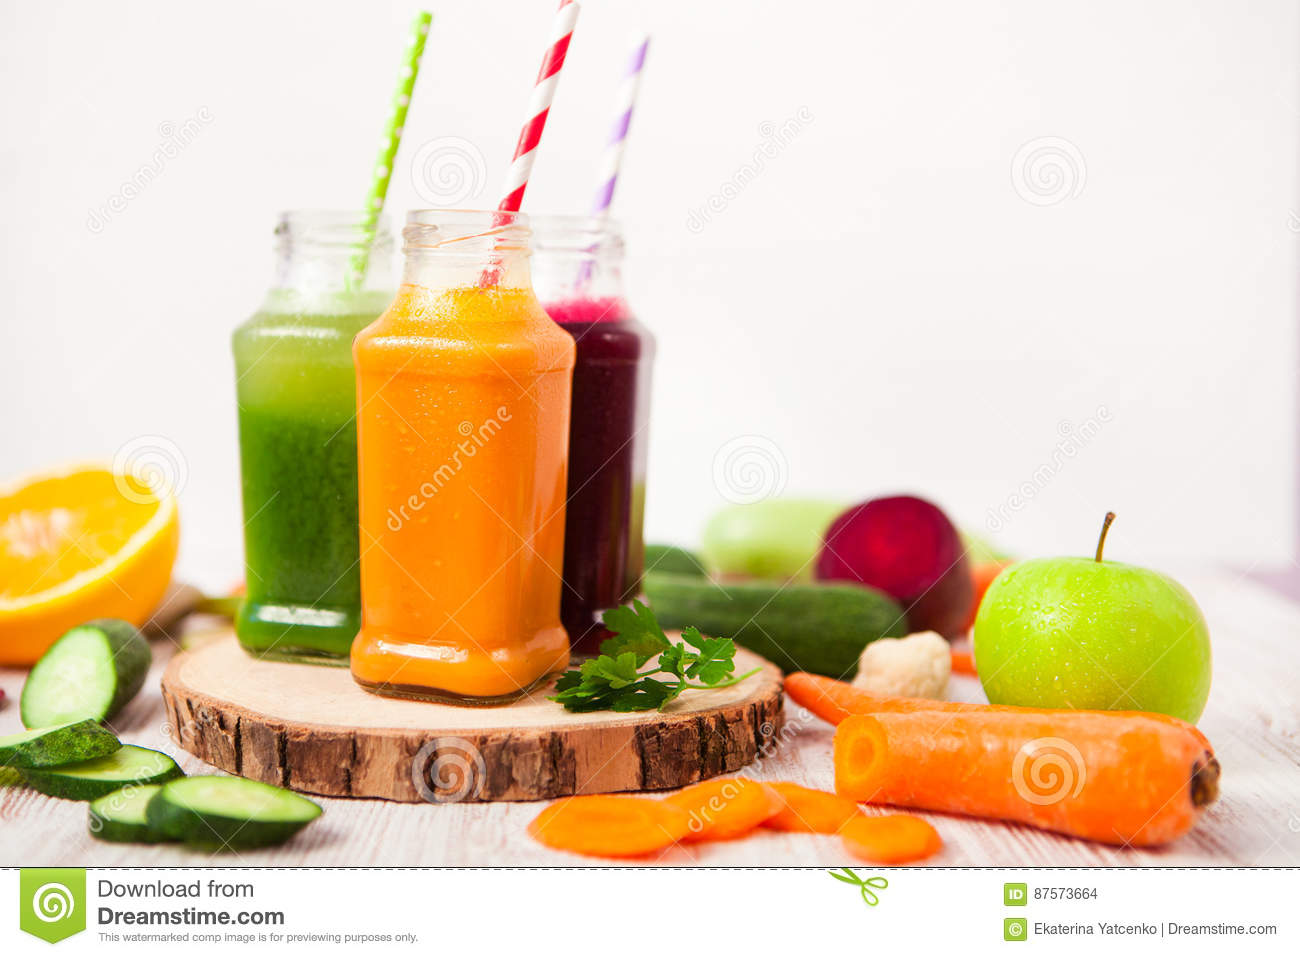 What juices are useful